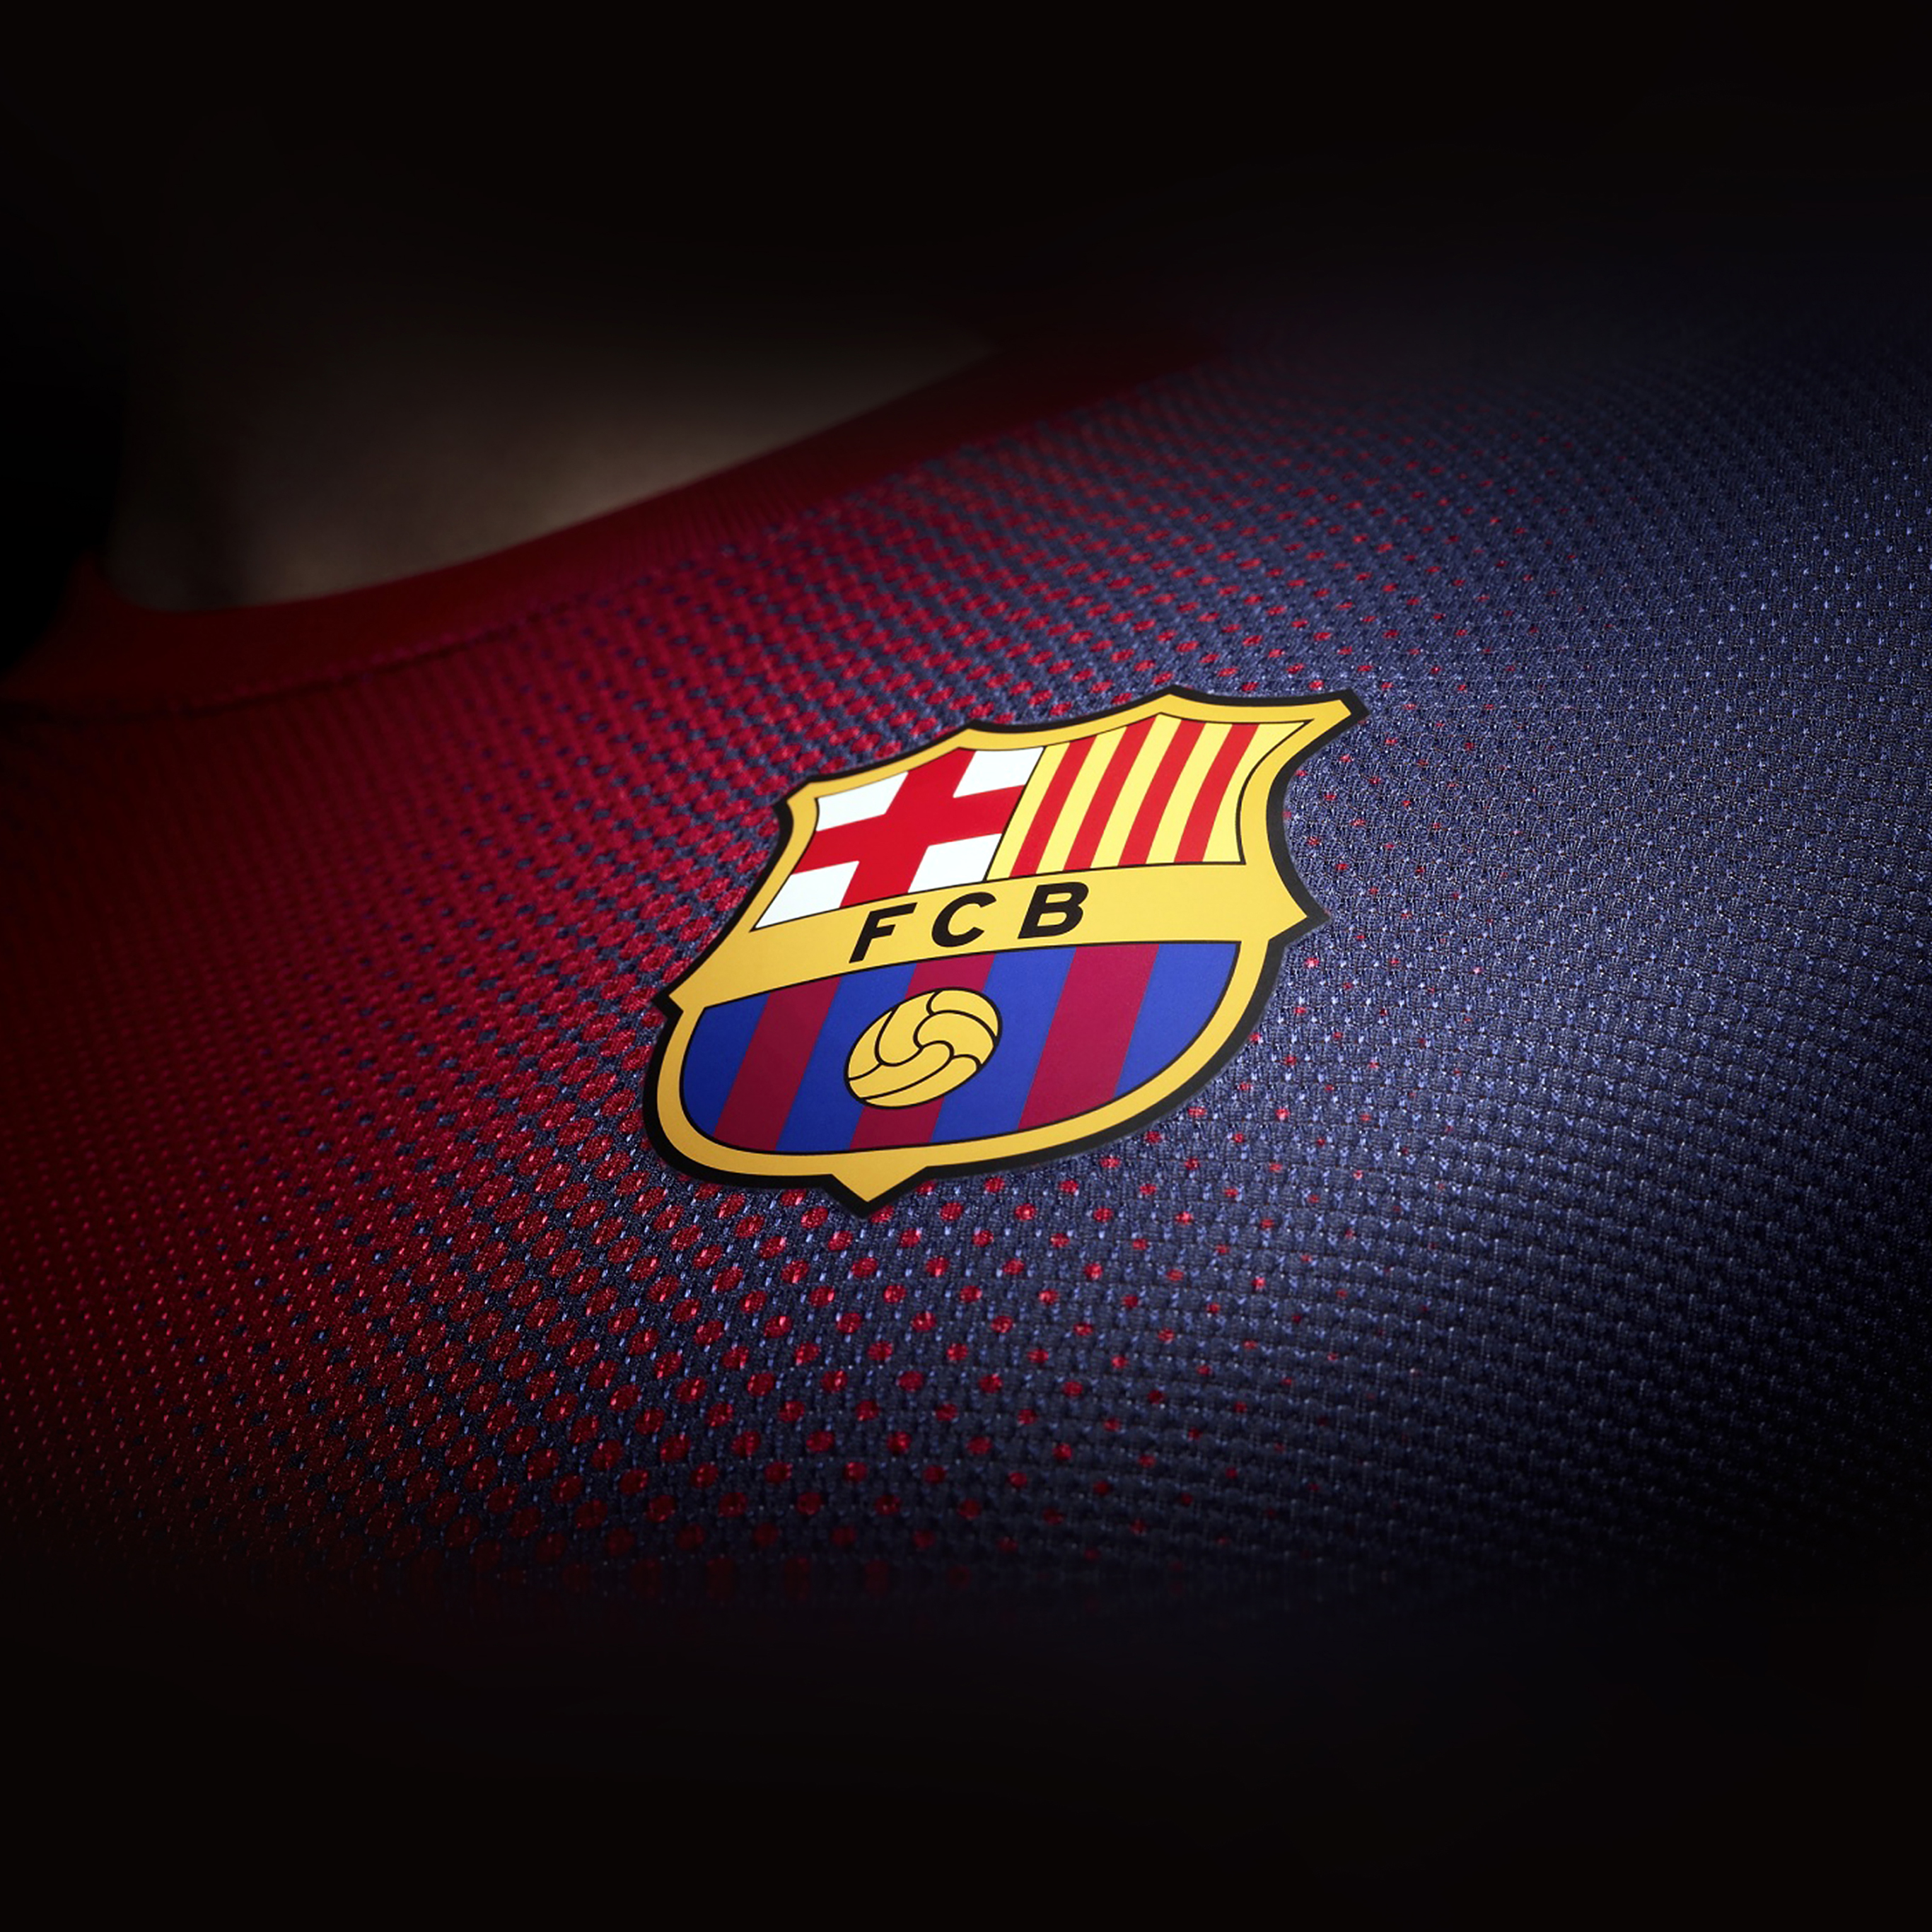 Ac37 Wallpaper Barcelona Logo Emblem Sports Papers